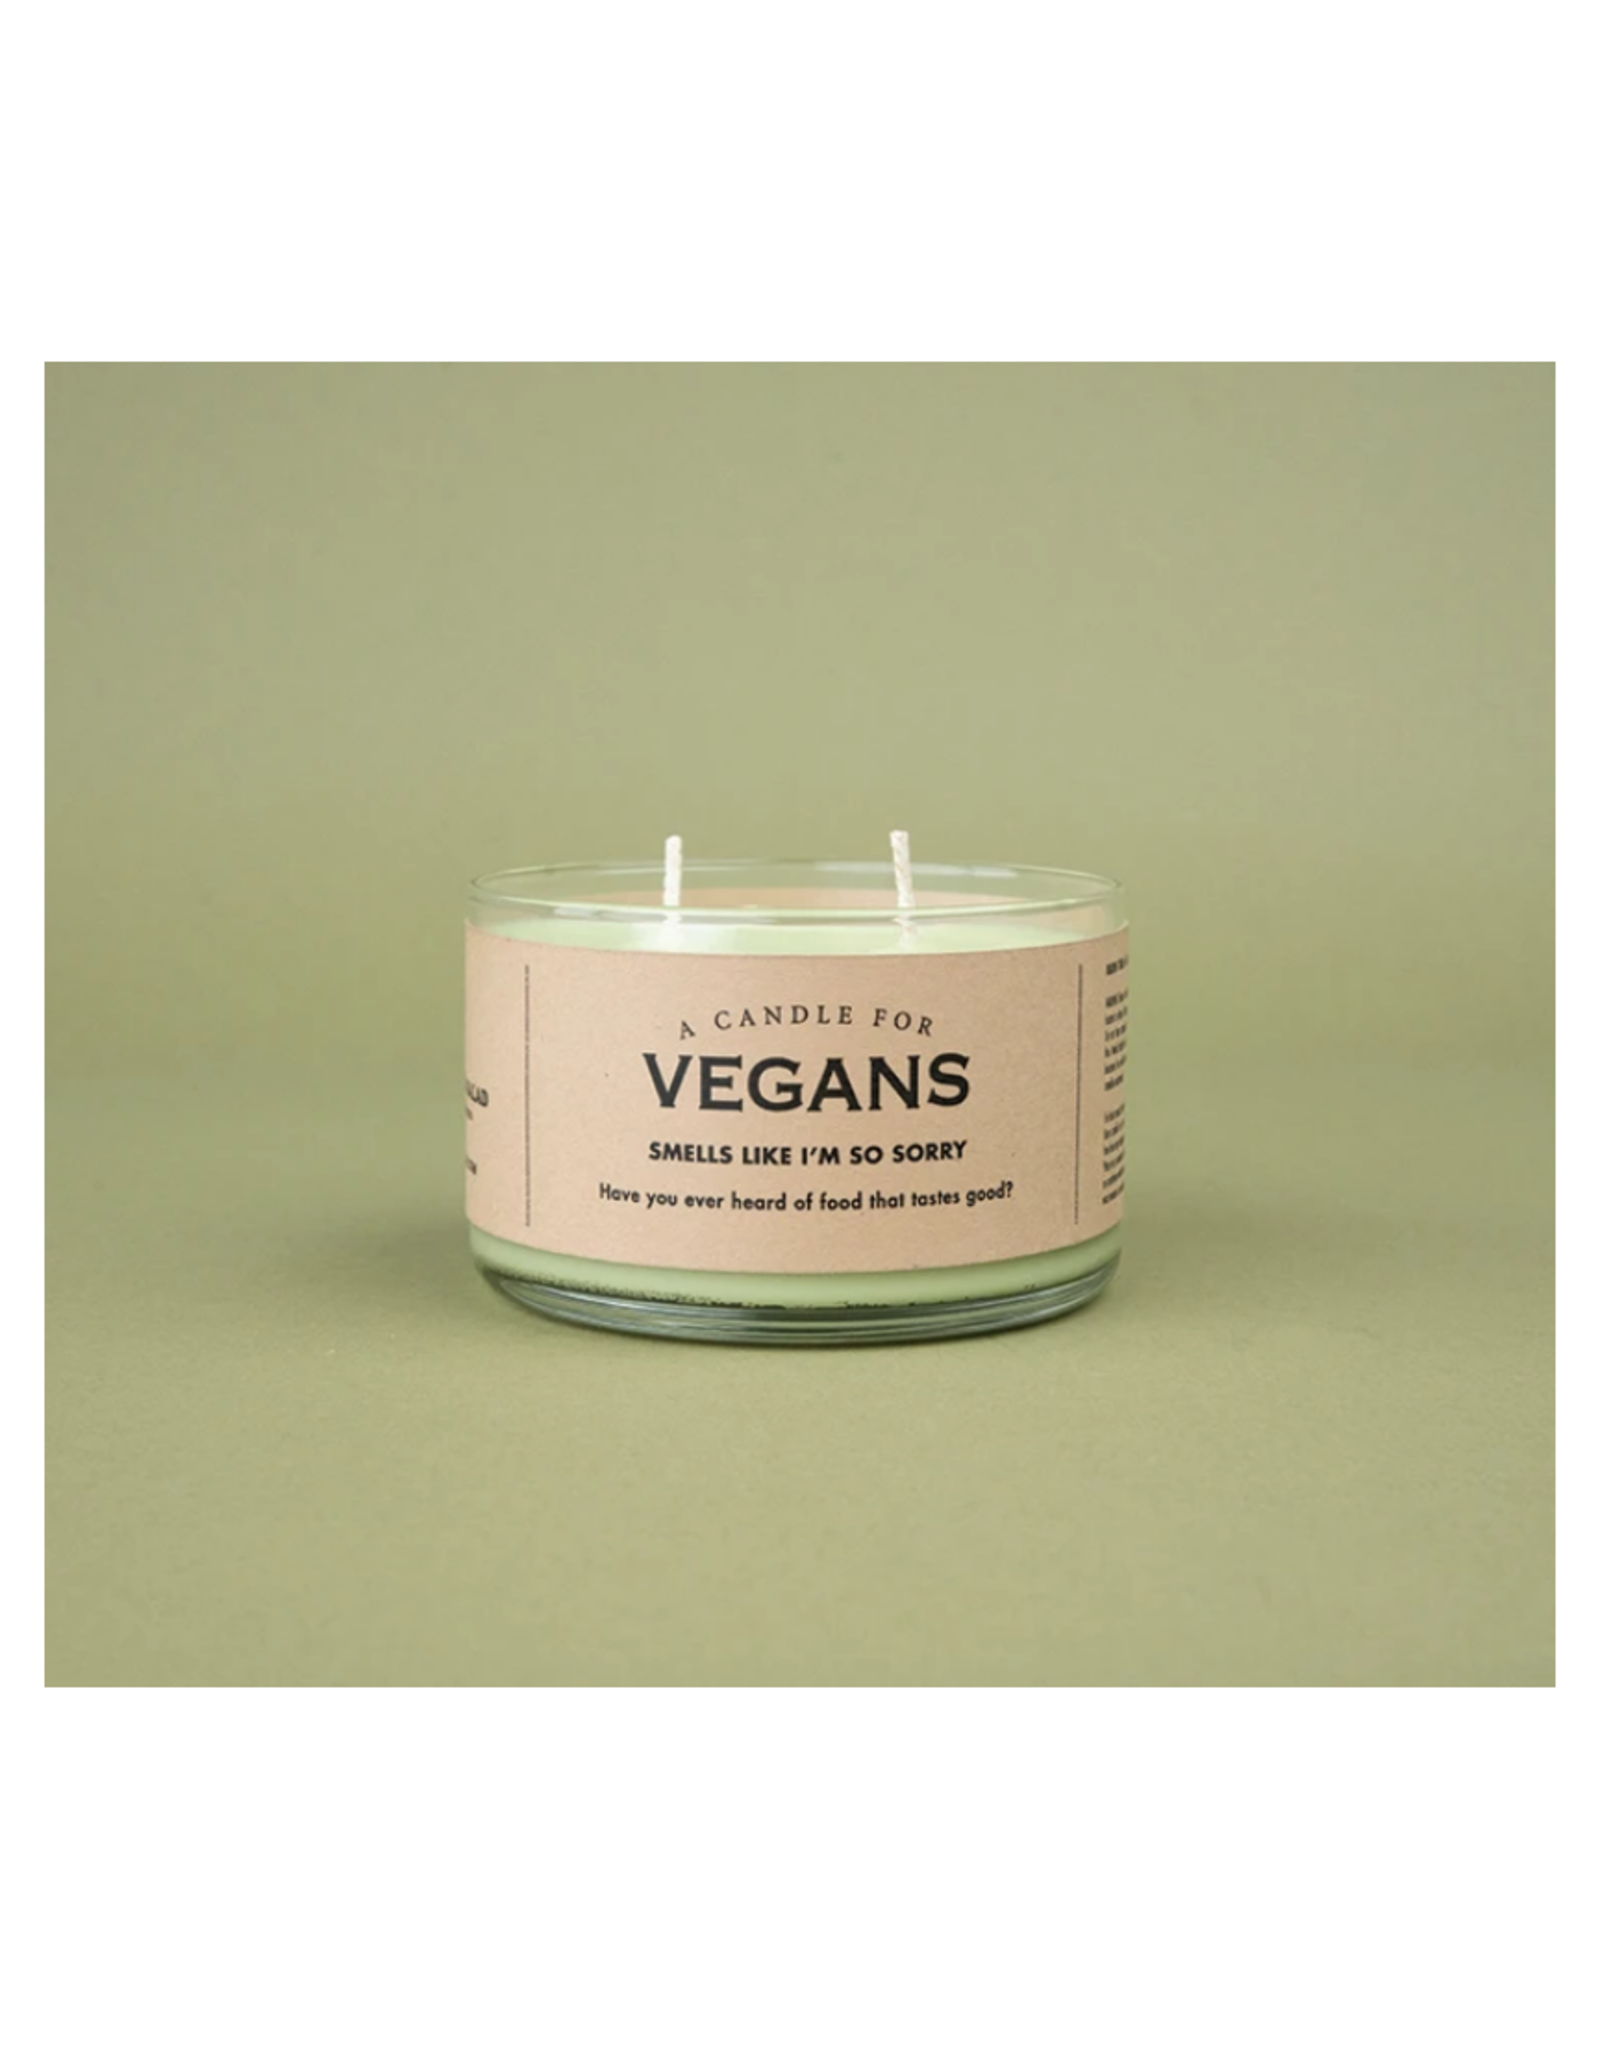 A Candle for Vegans